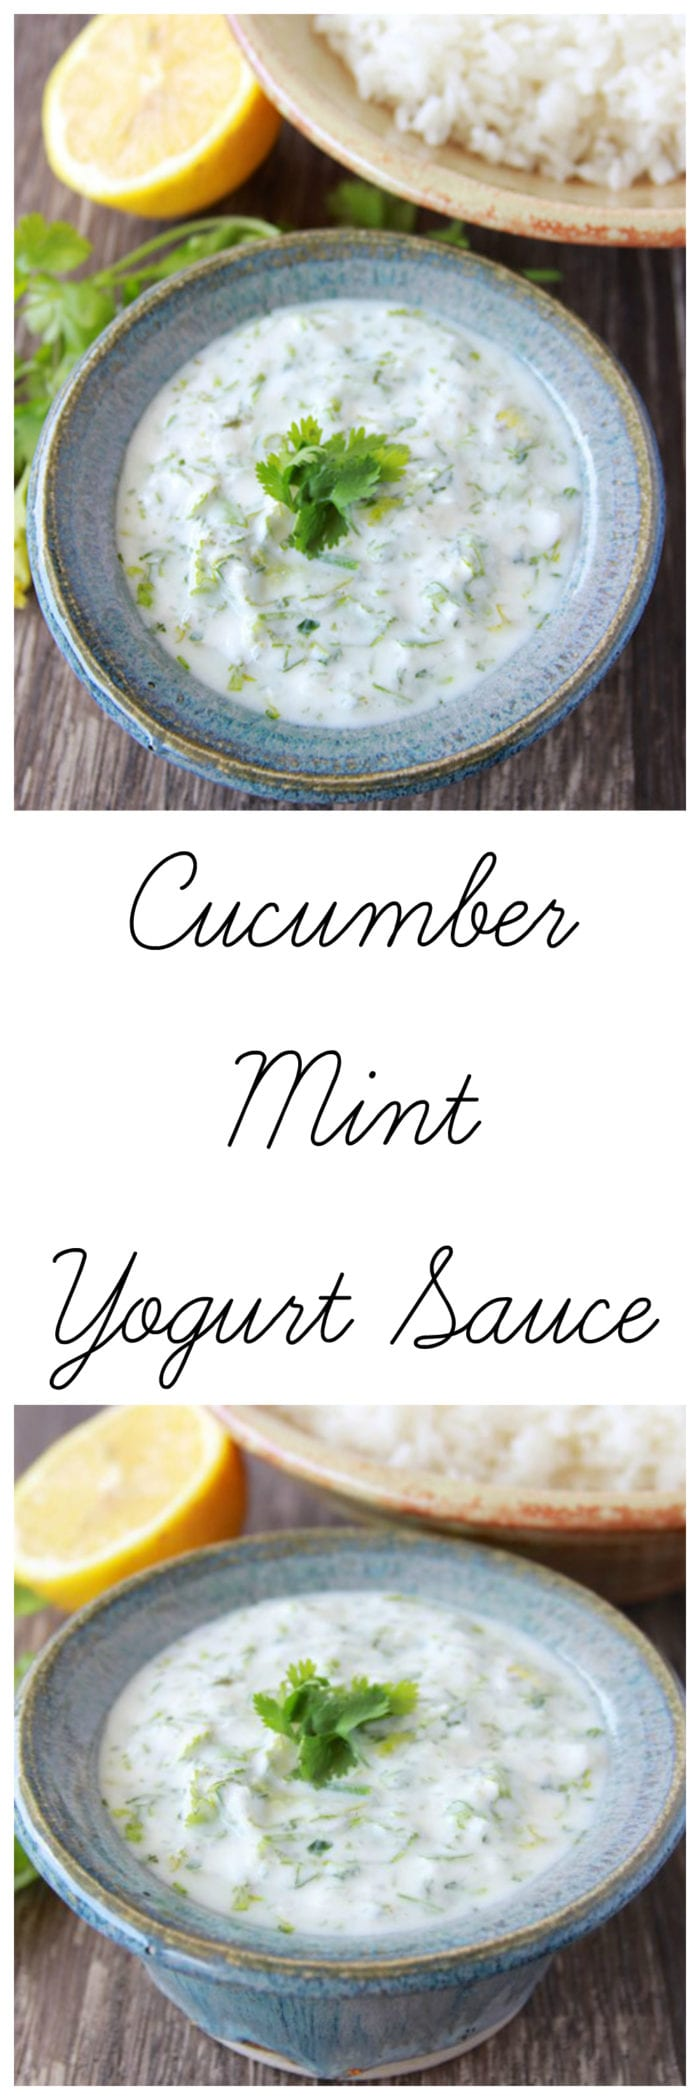 Cucumber Mint Yogurt Sauce is light and flavorful and will pair beautifully with your summer dinners! www.cookingwithruthie.com